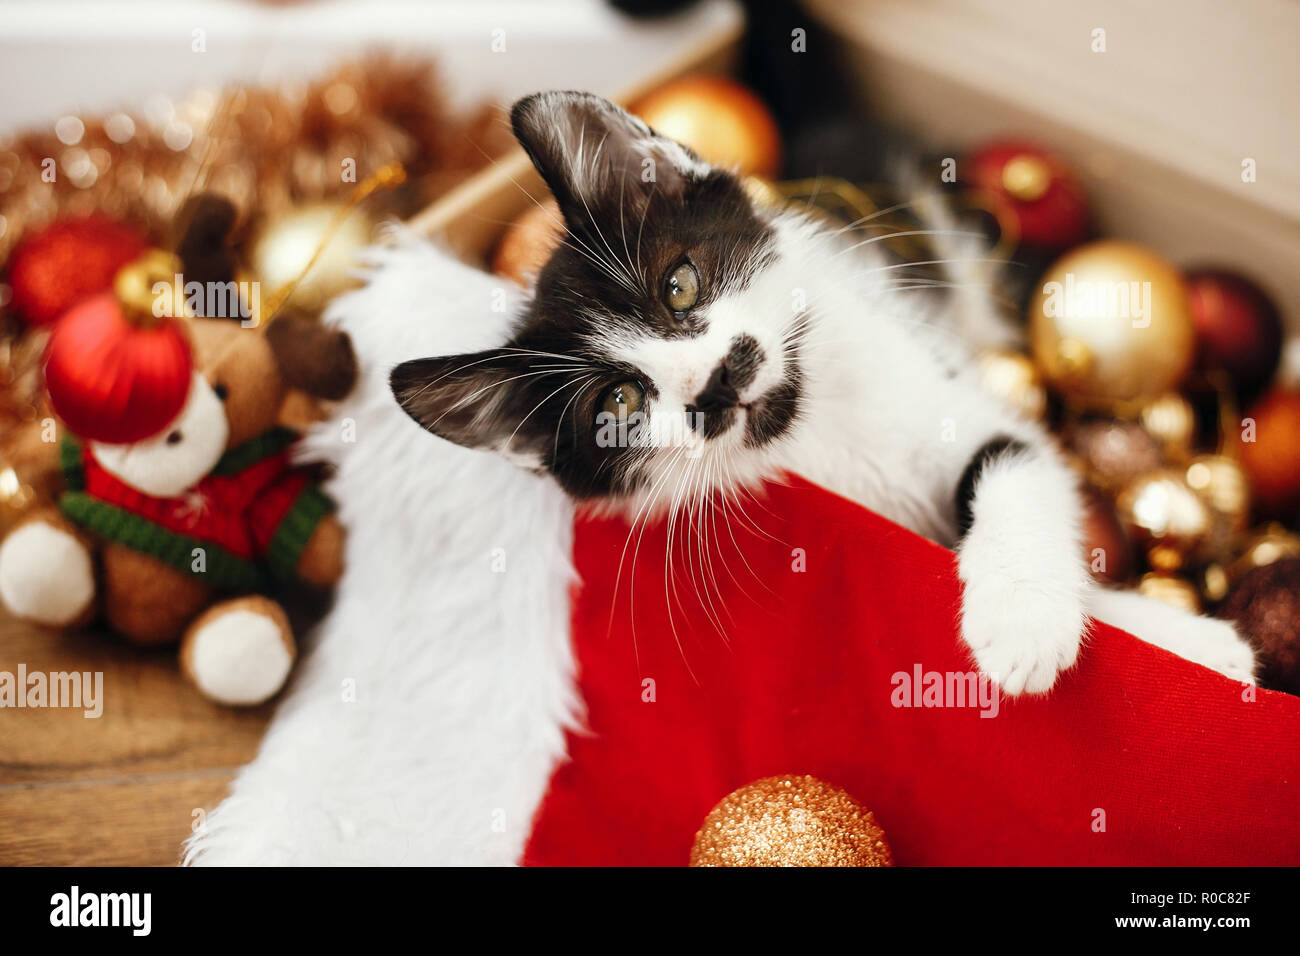 Cute kitty playing with red and gold baubles in box, ornaments and santa hat under christmas tree in festive room. Merry Christmas concept. Adorable f - Stock Image